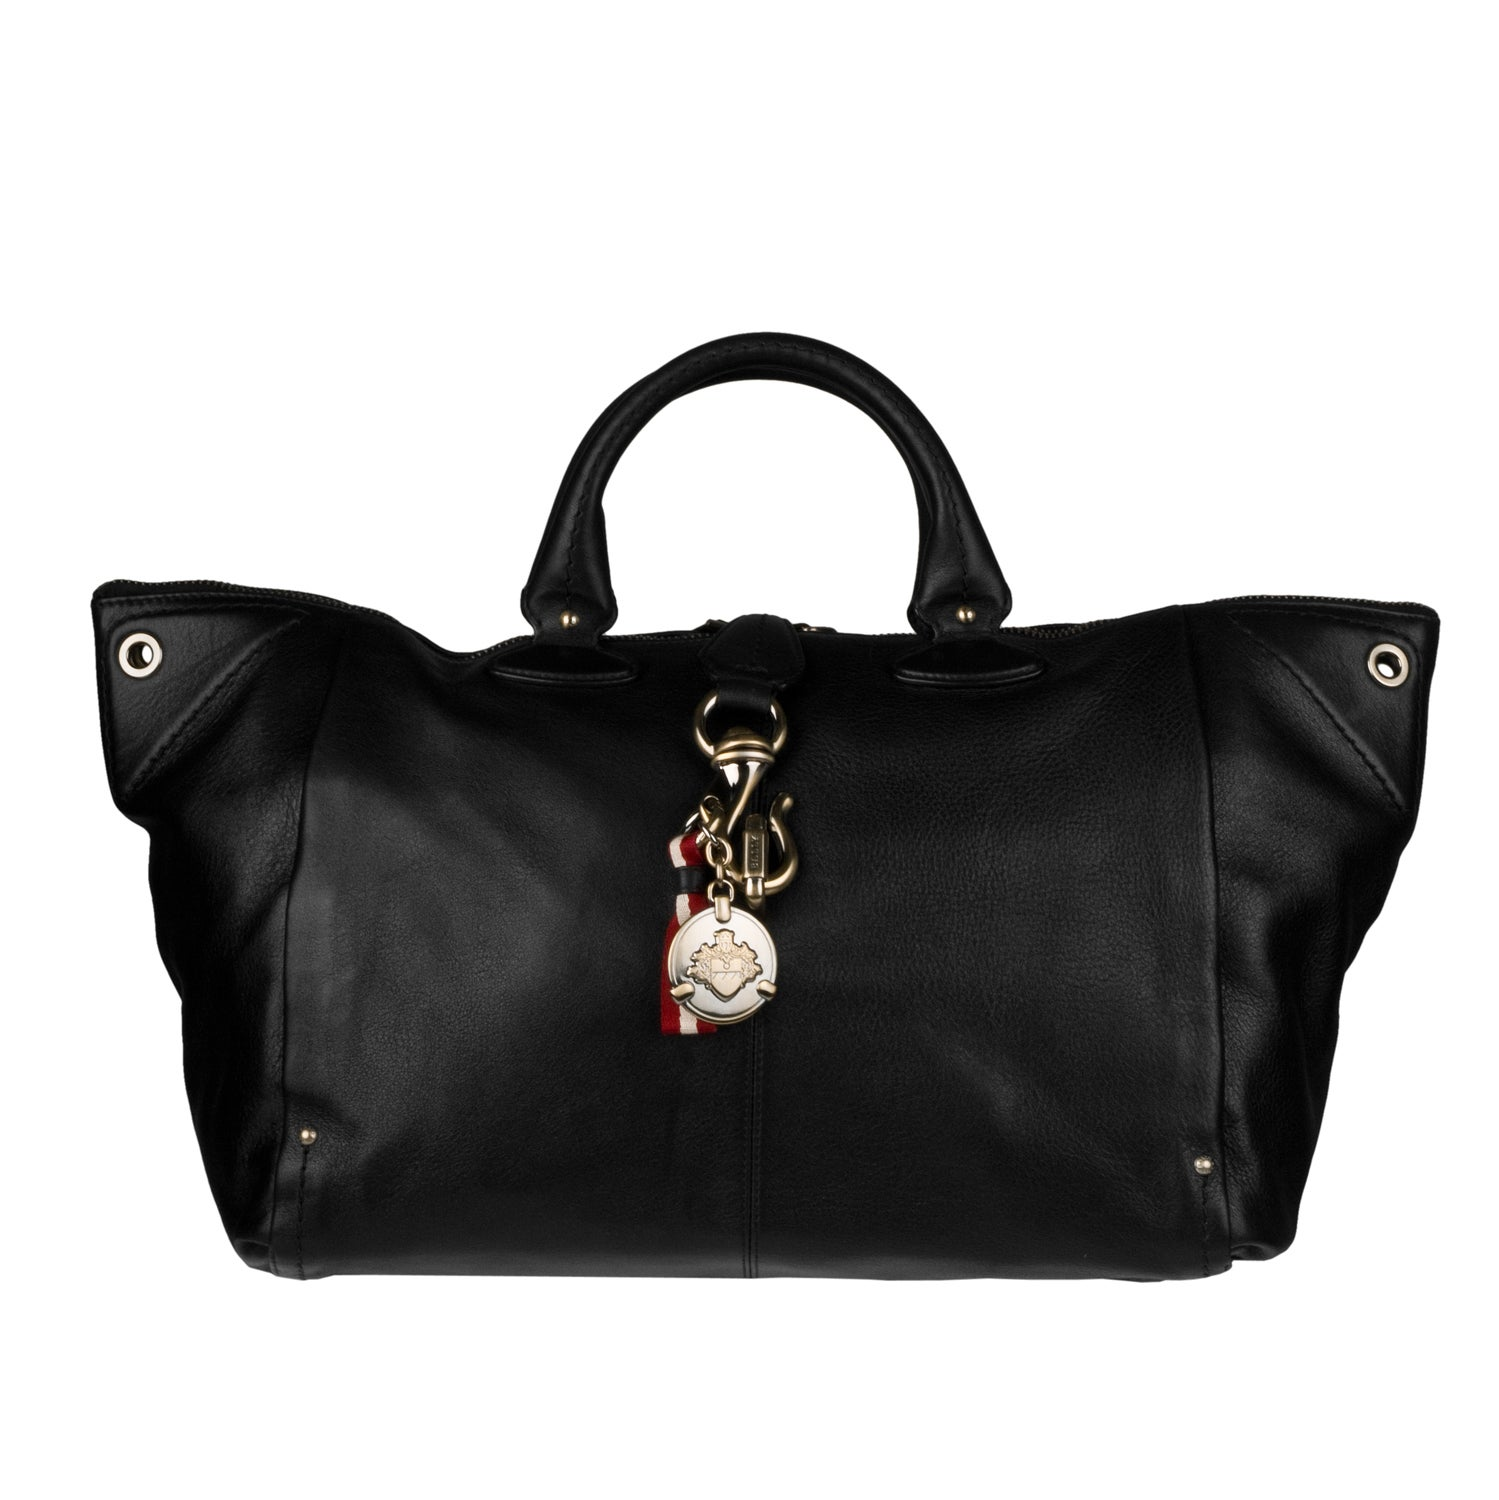 Bally Bowlings Leather Tote Bag